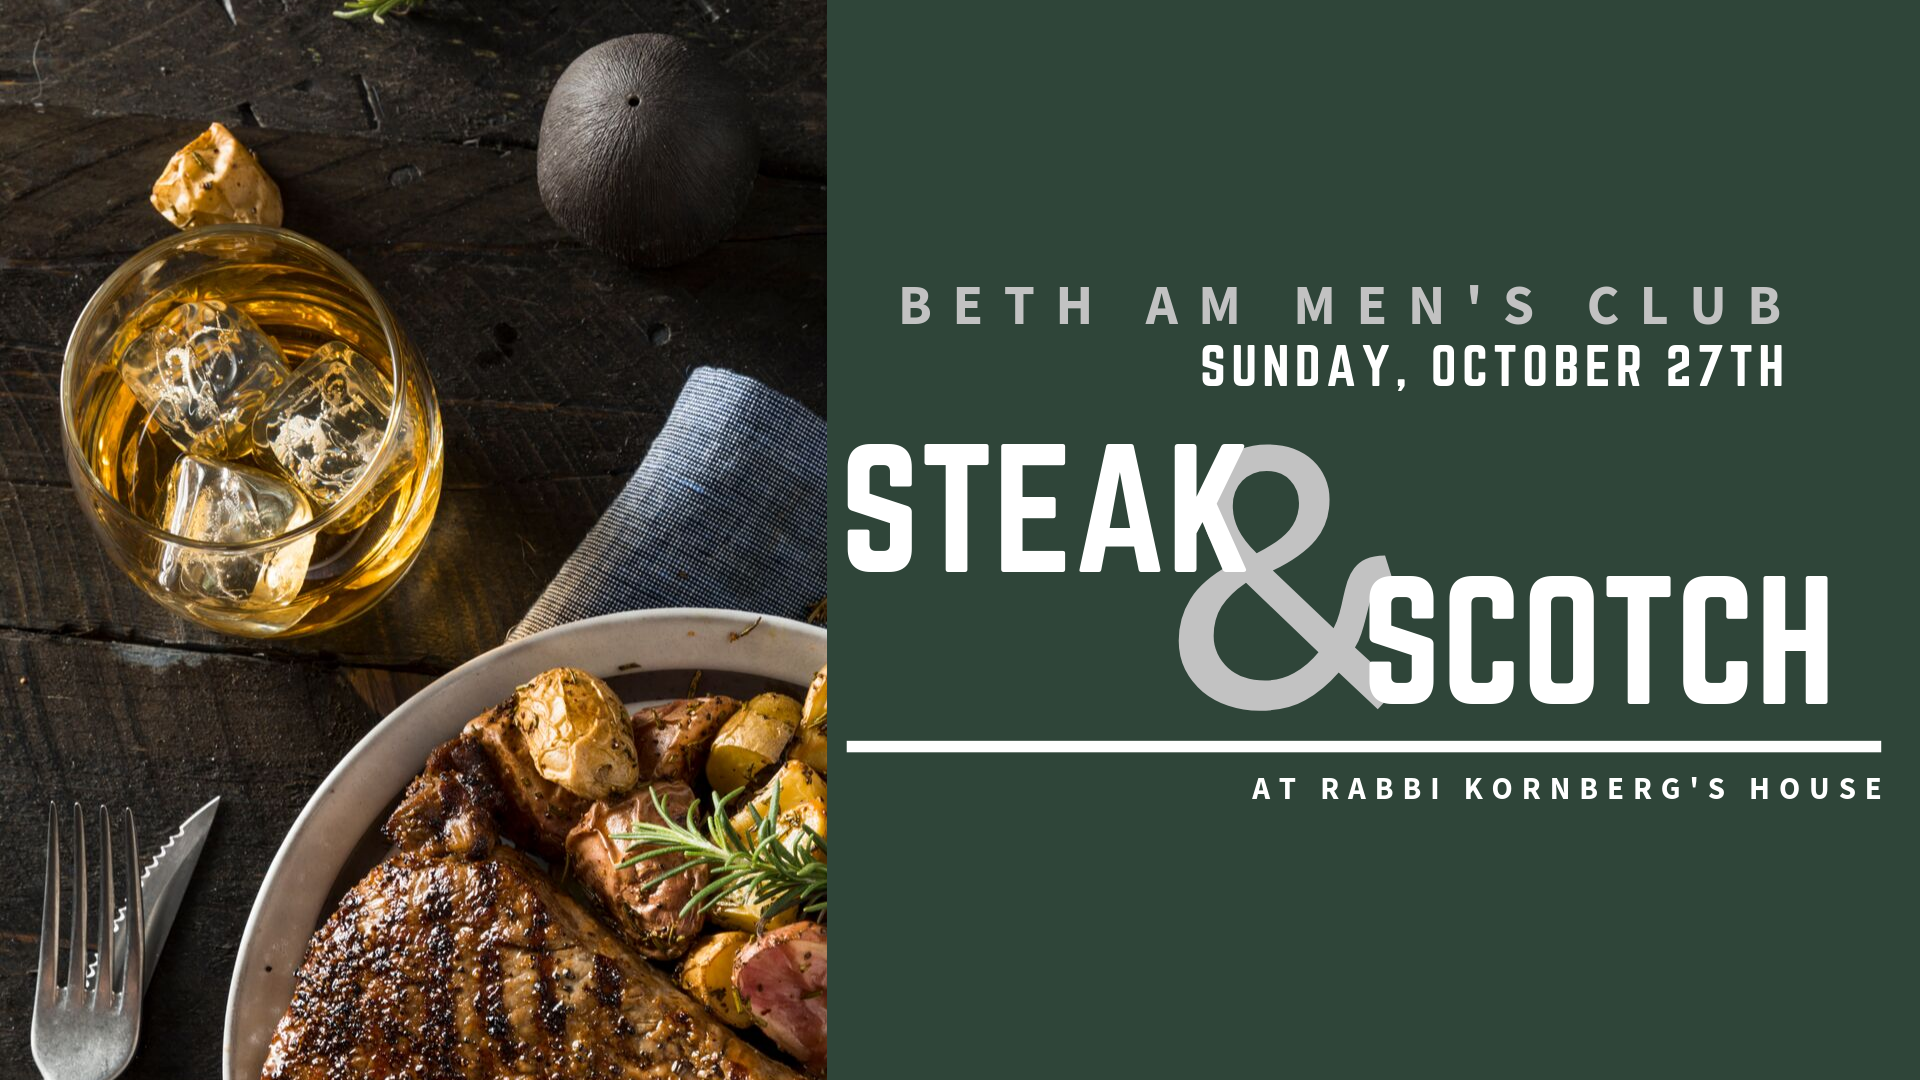 Banner Image for Men's Club: Steak & Scotch